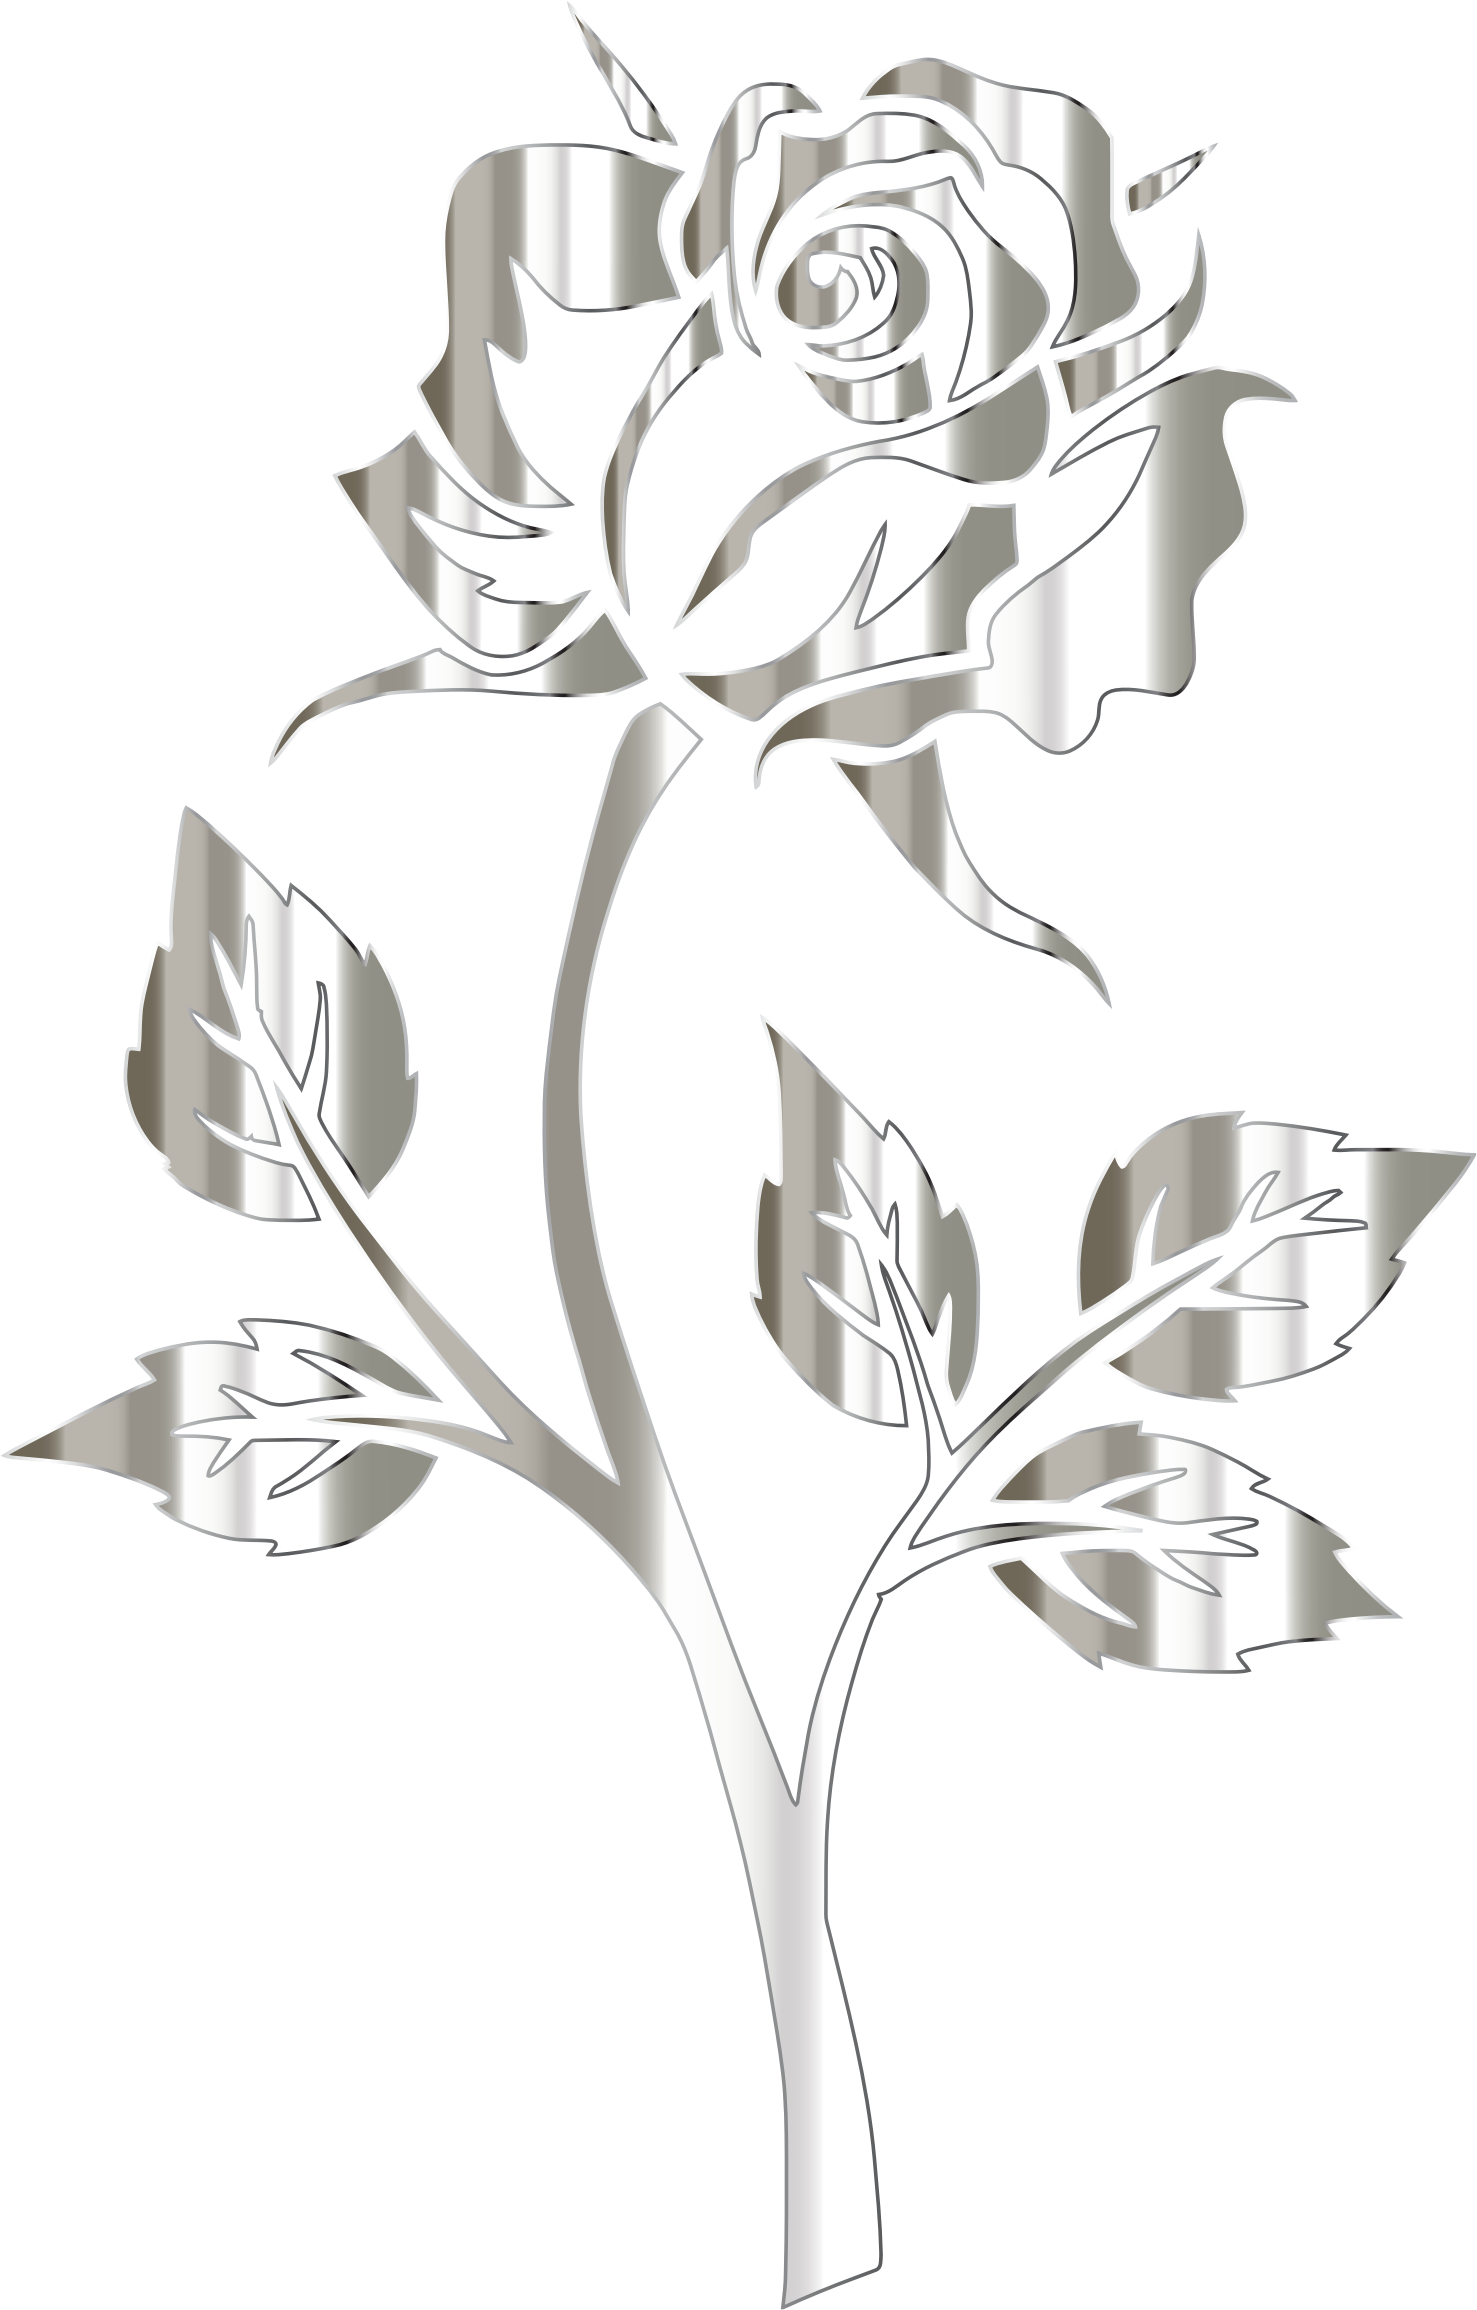 Clipart rose clear background. Image polished silver silhouette